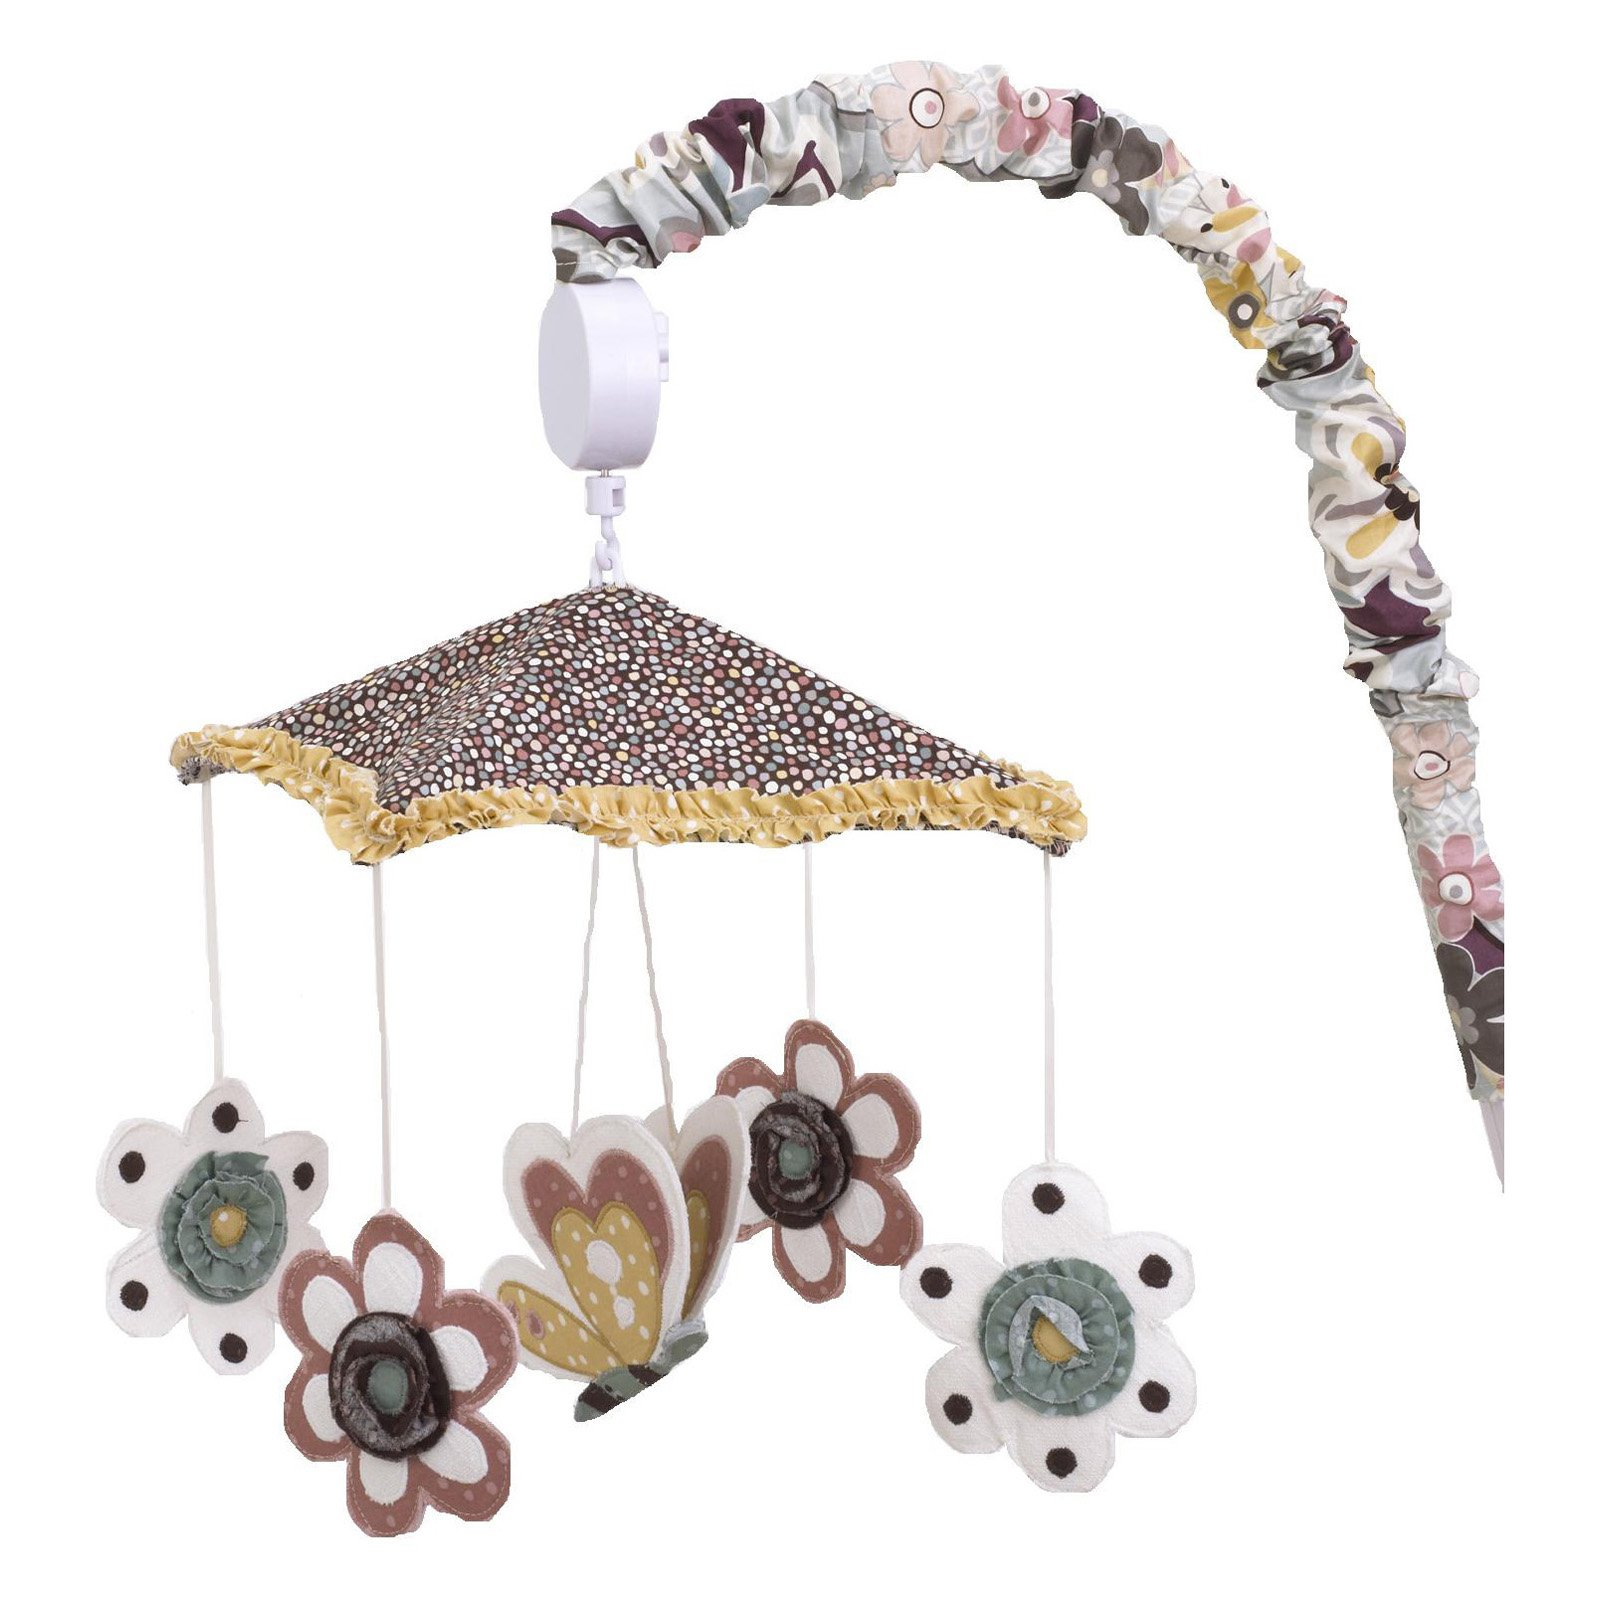 Cotton Tale Designs Penny Lane Musical Mobile